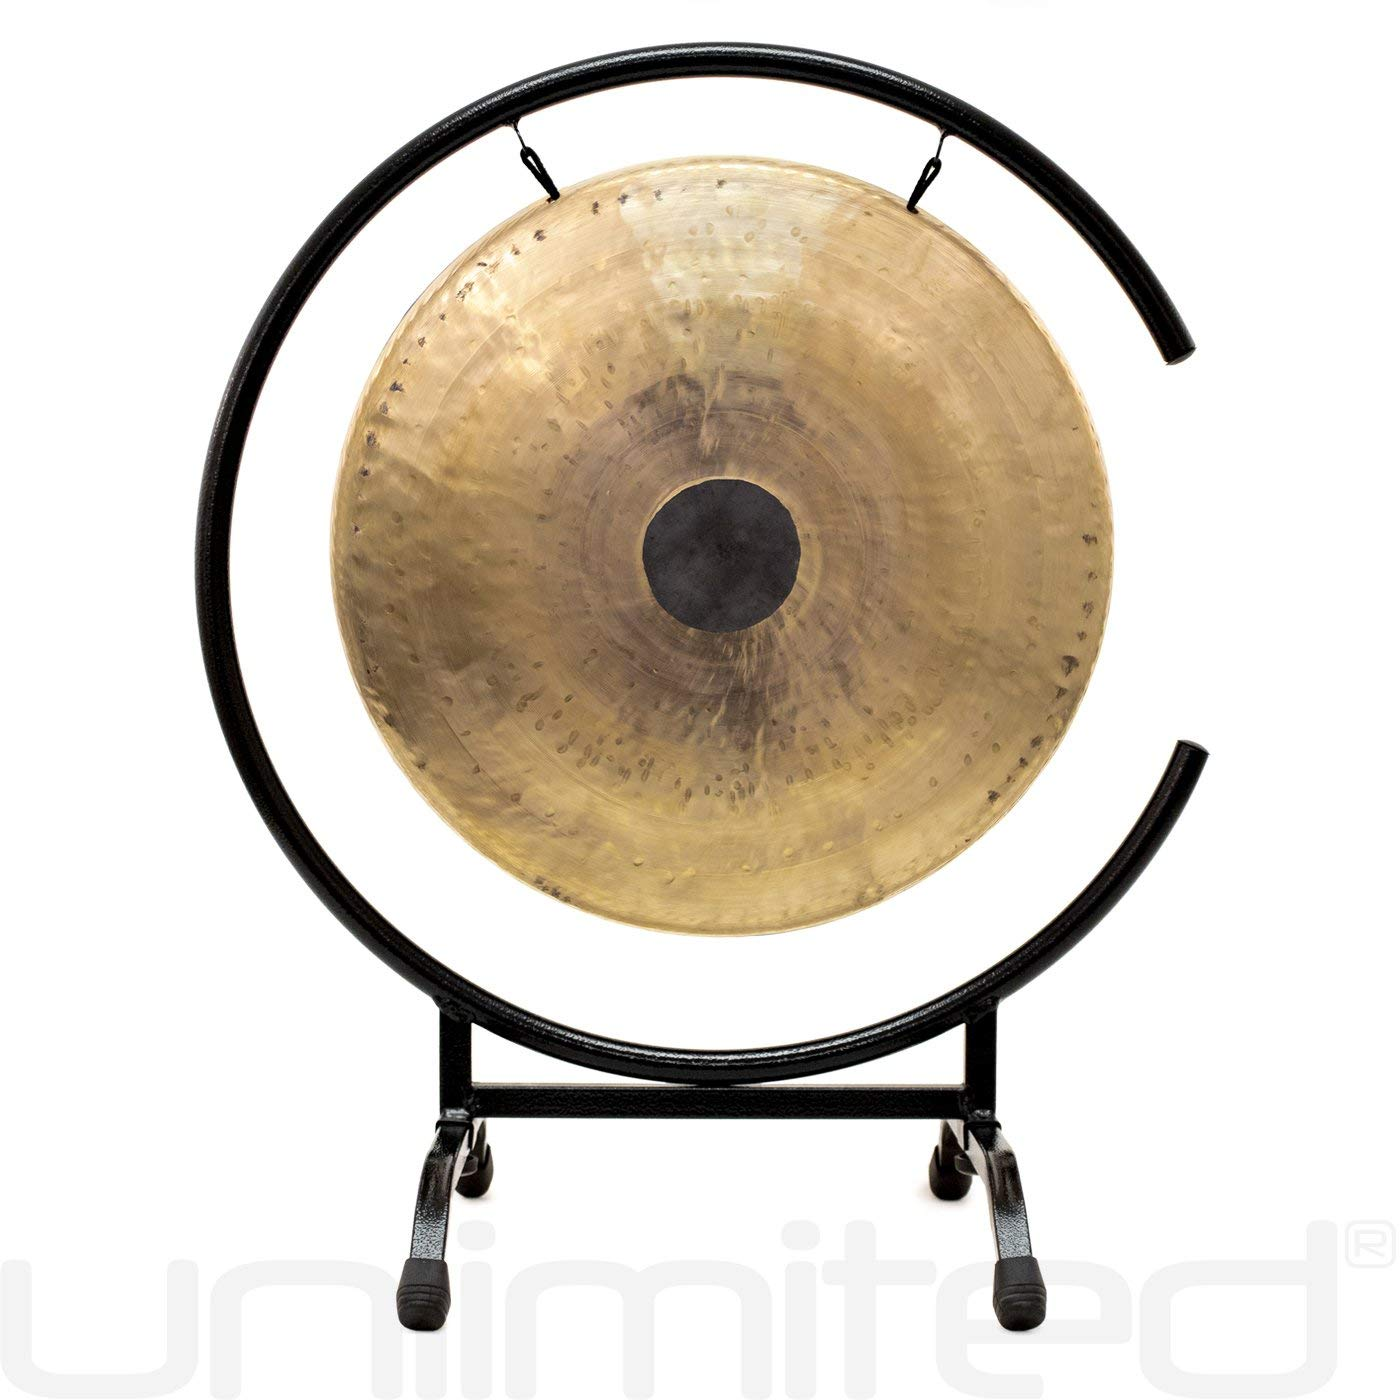 15 to 16 Gongs on the High C Gong Stand